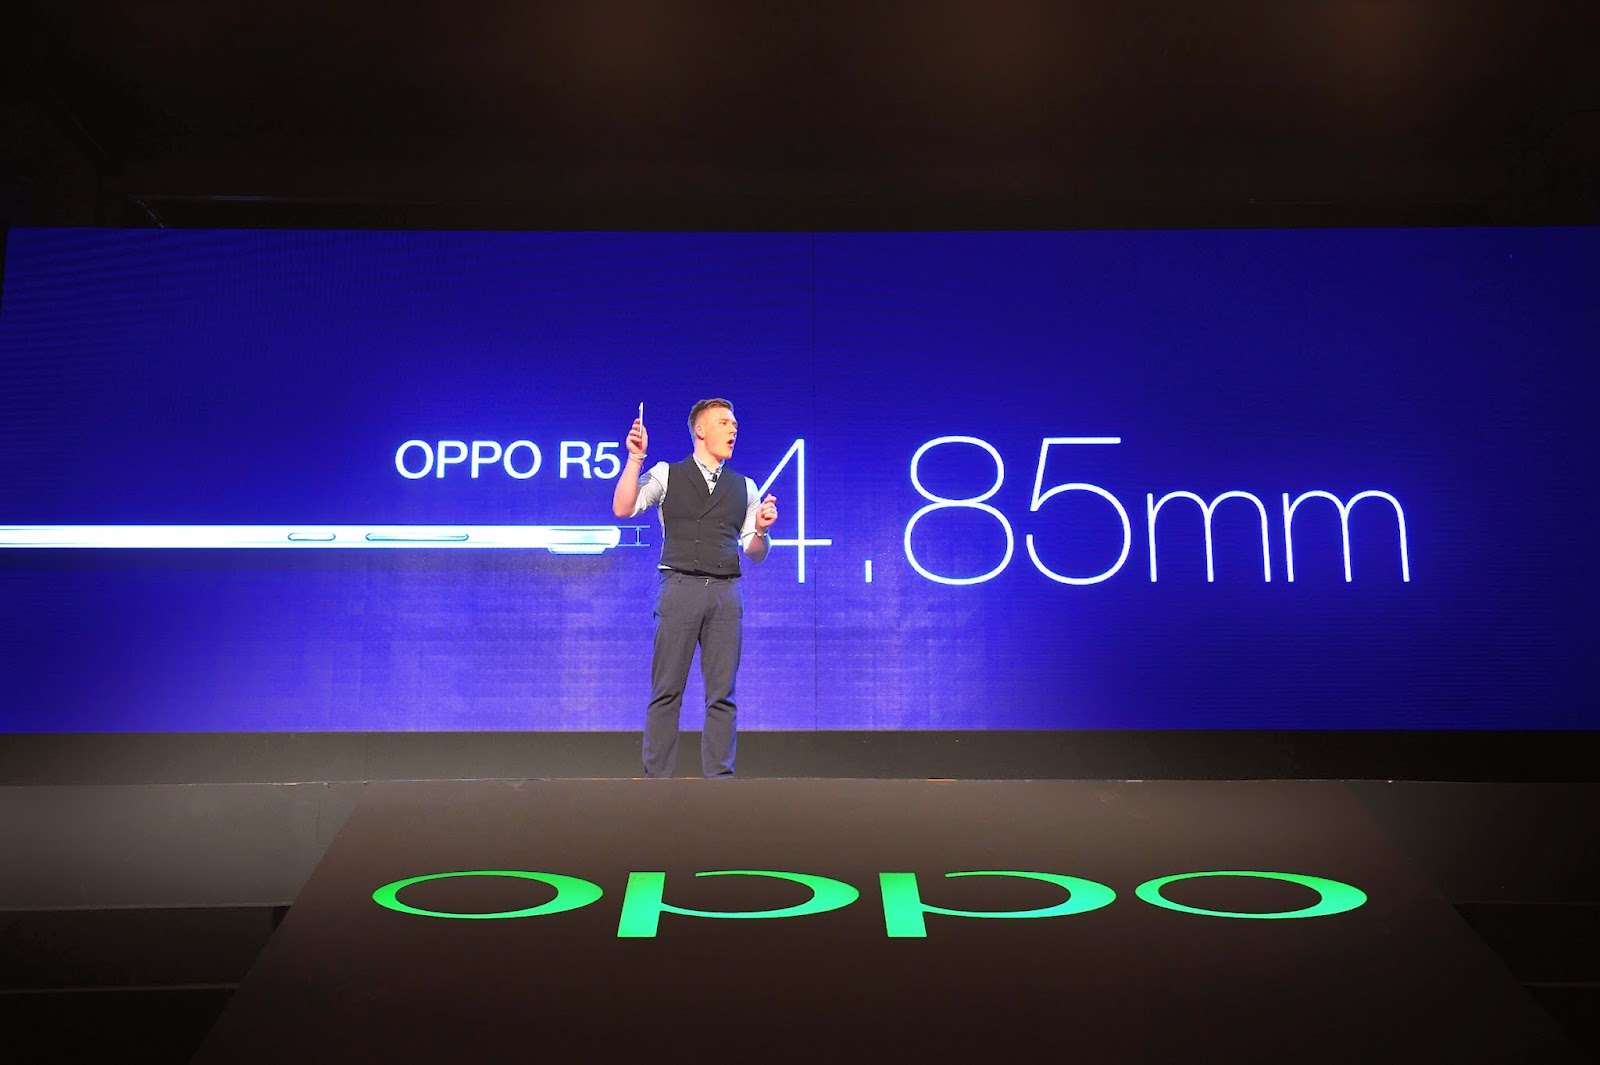 world's thinnest smartphone, oppo r5 in good fortune as the thinnest smartphone in the world